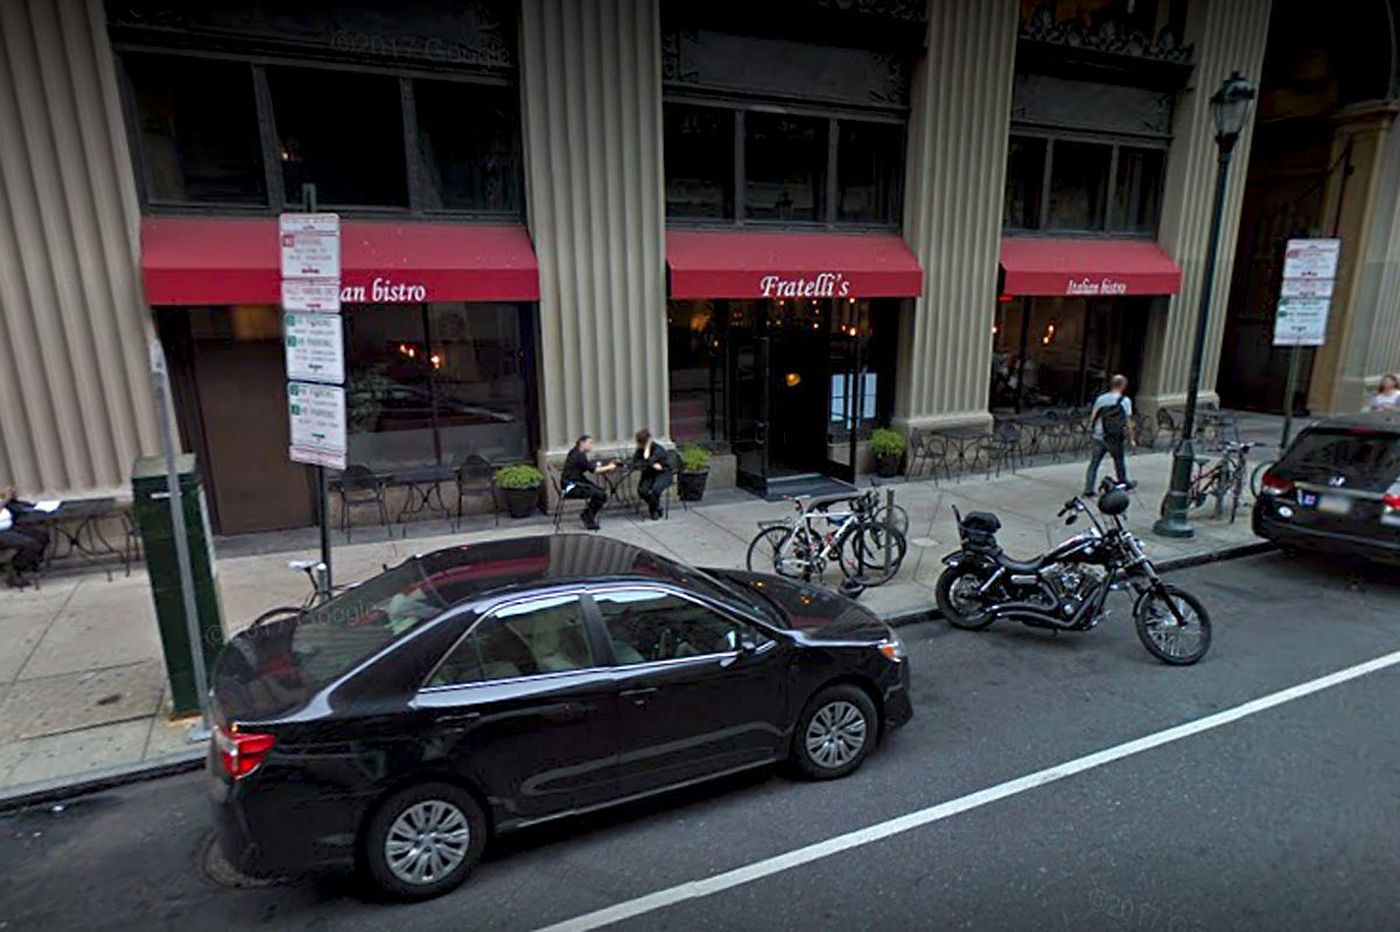 Fratelli's Italian Bistro in Center City closes